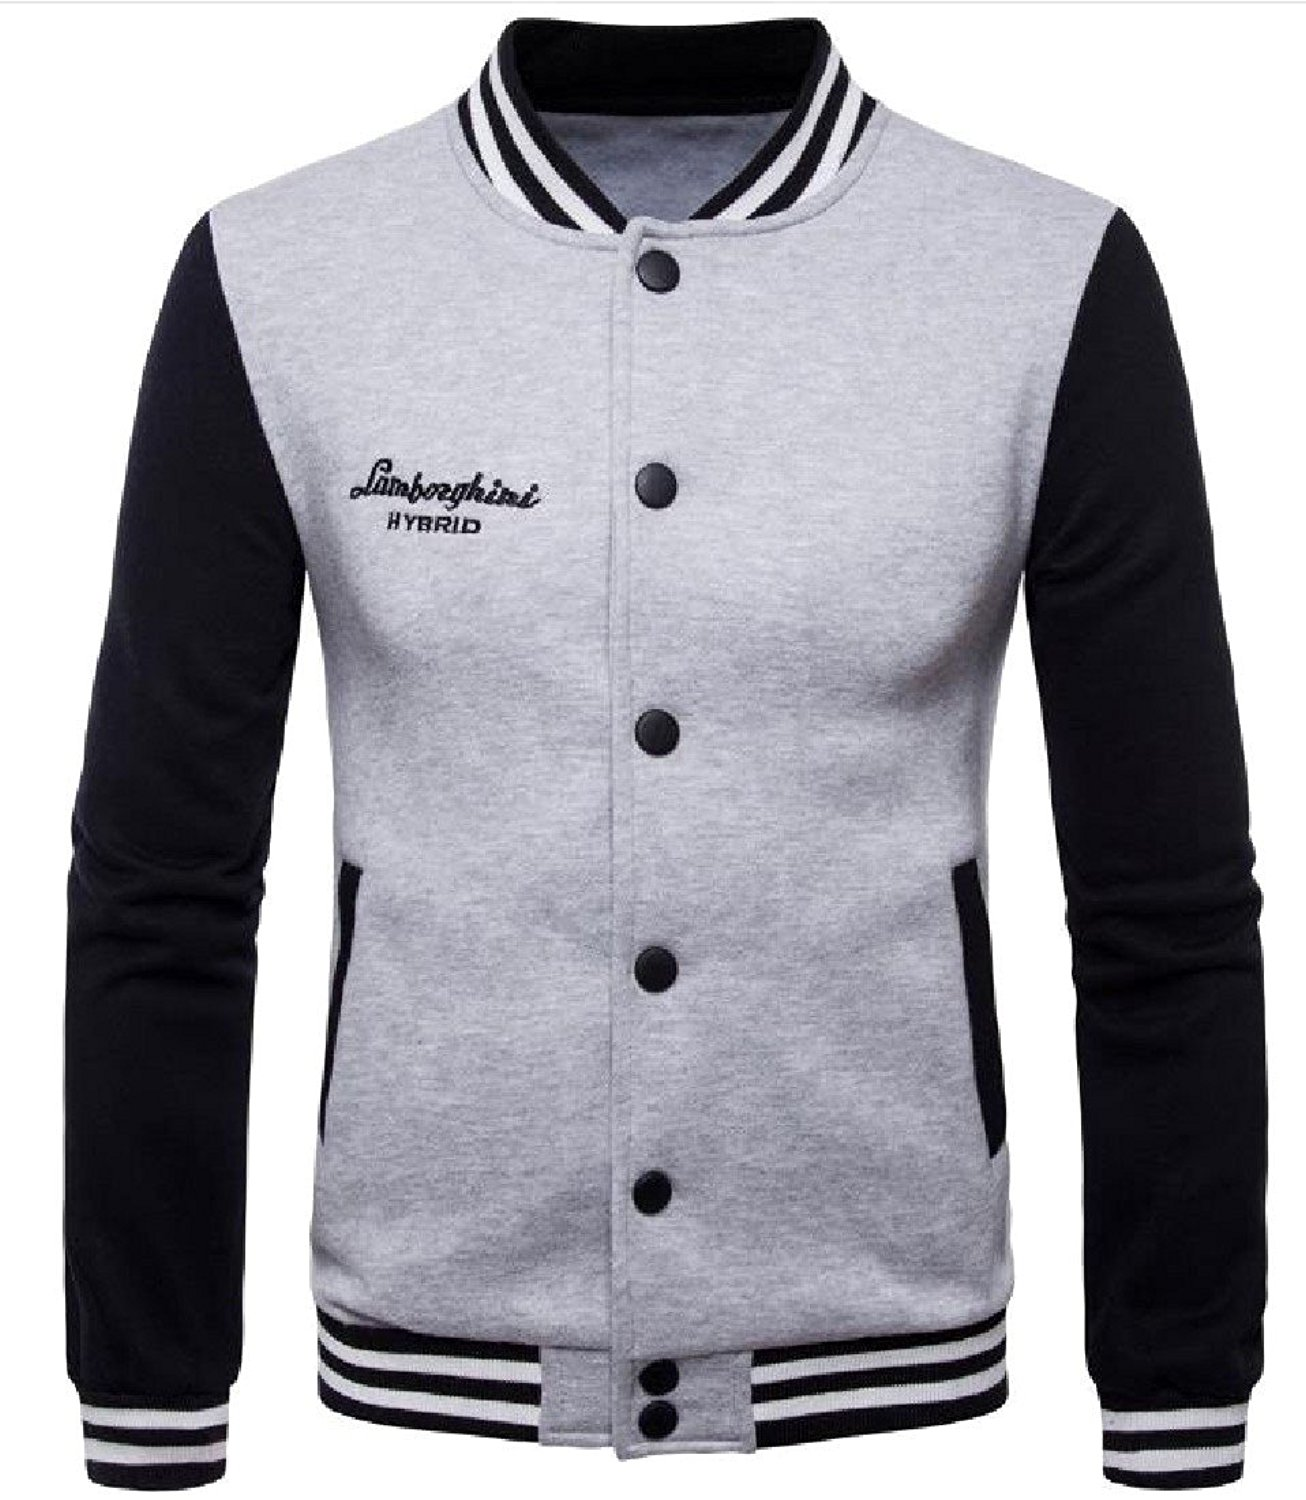 Abetteric Mens Striped Trim Stitching Stand Collar Fleece Baseball Jacket